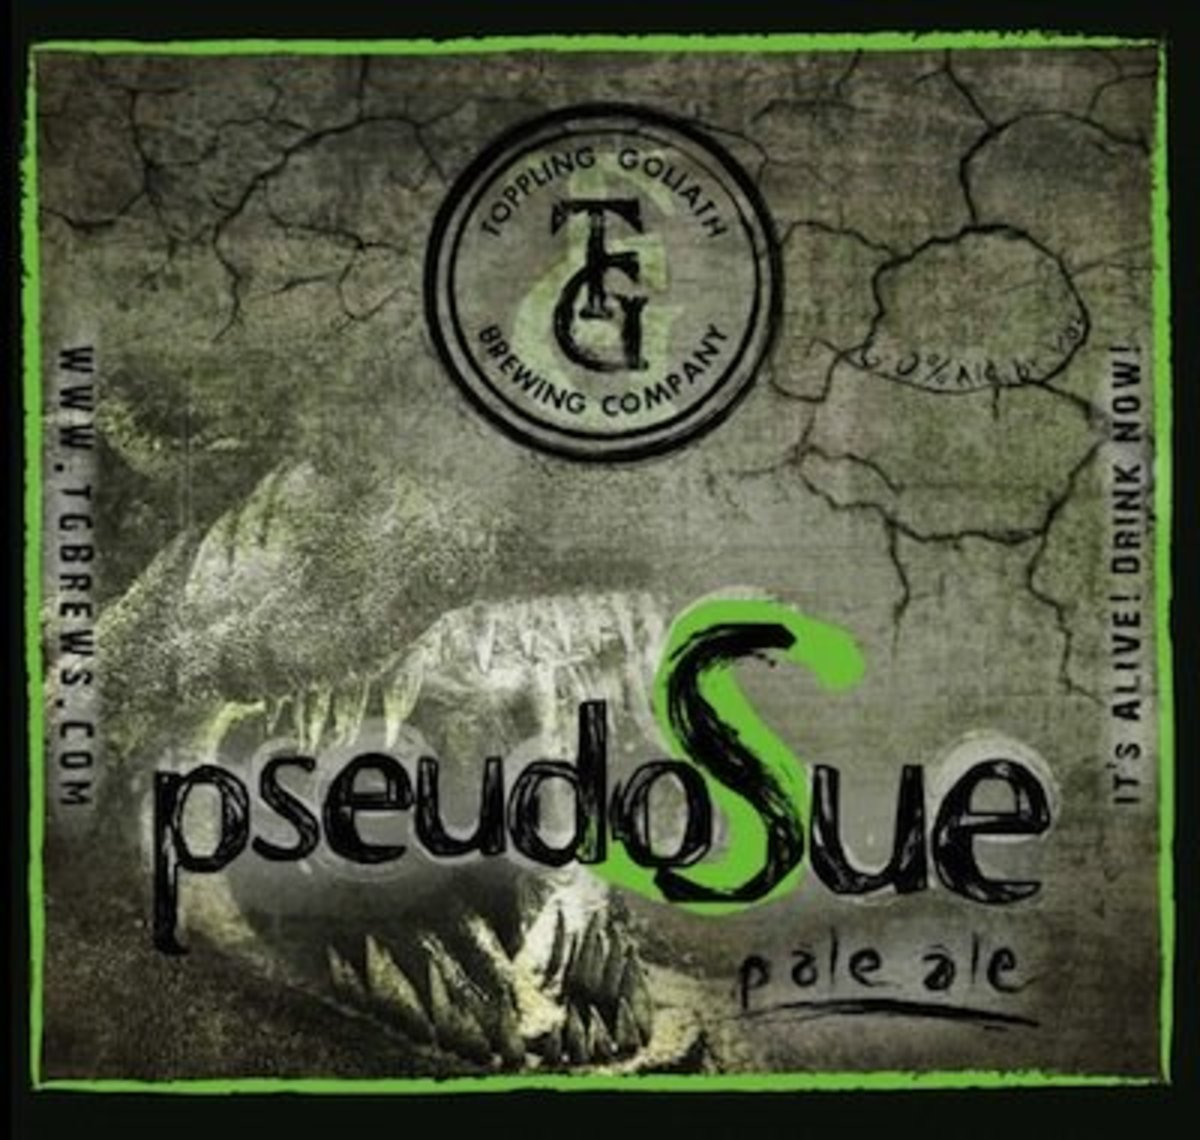 PseudoSue Pale Ale from Toppling Goliath is named after the largest dinosaur bones found to date, an excellent name for a giant breed dog.